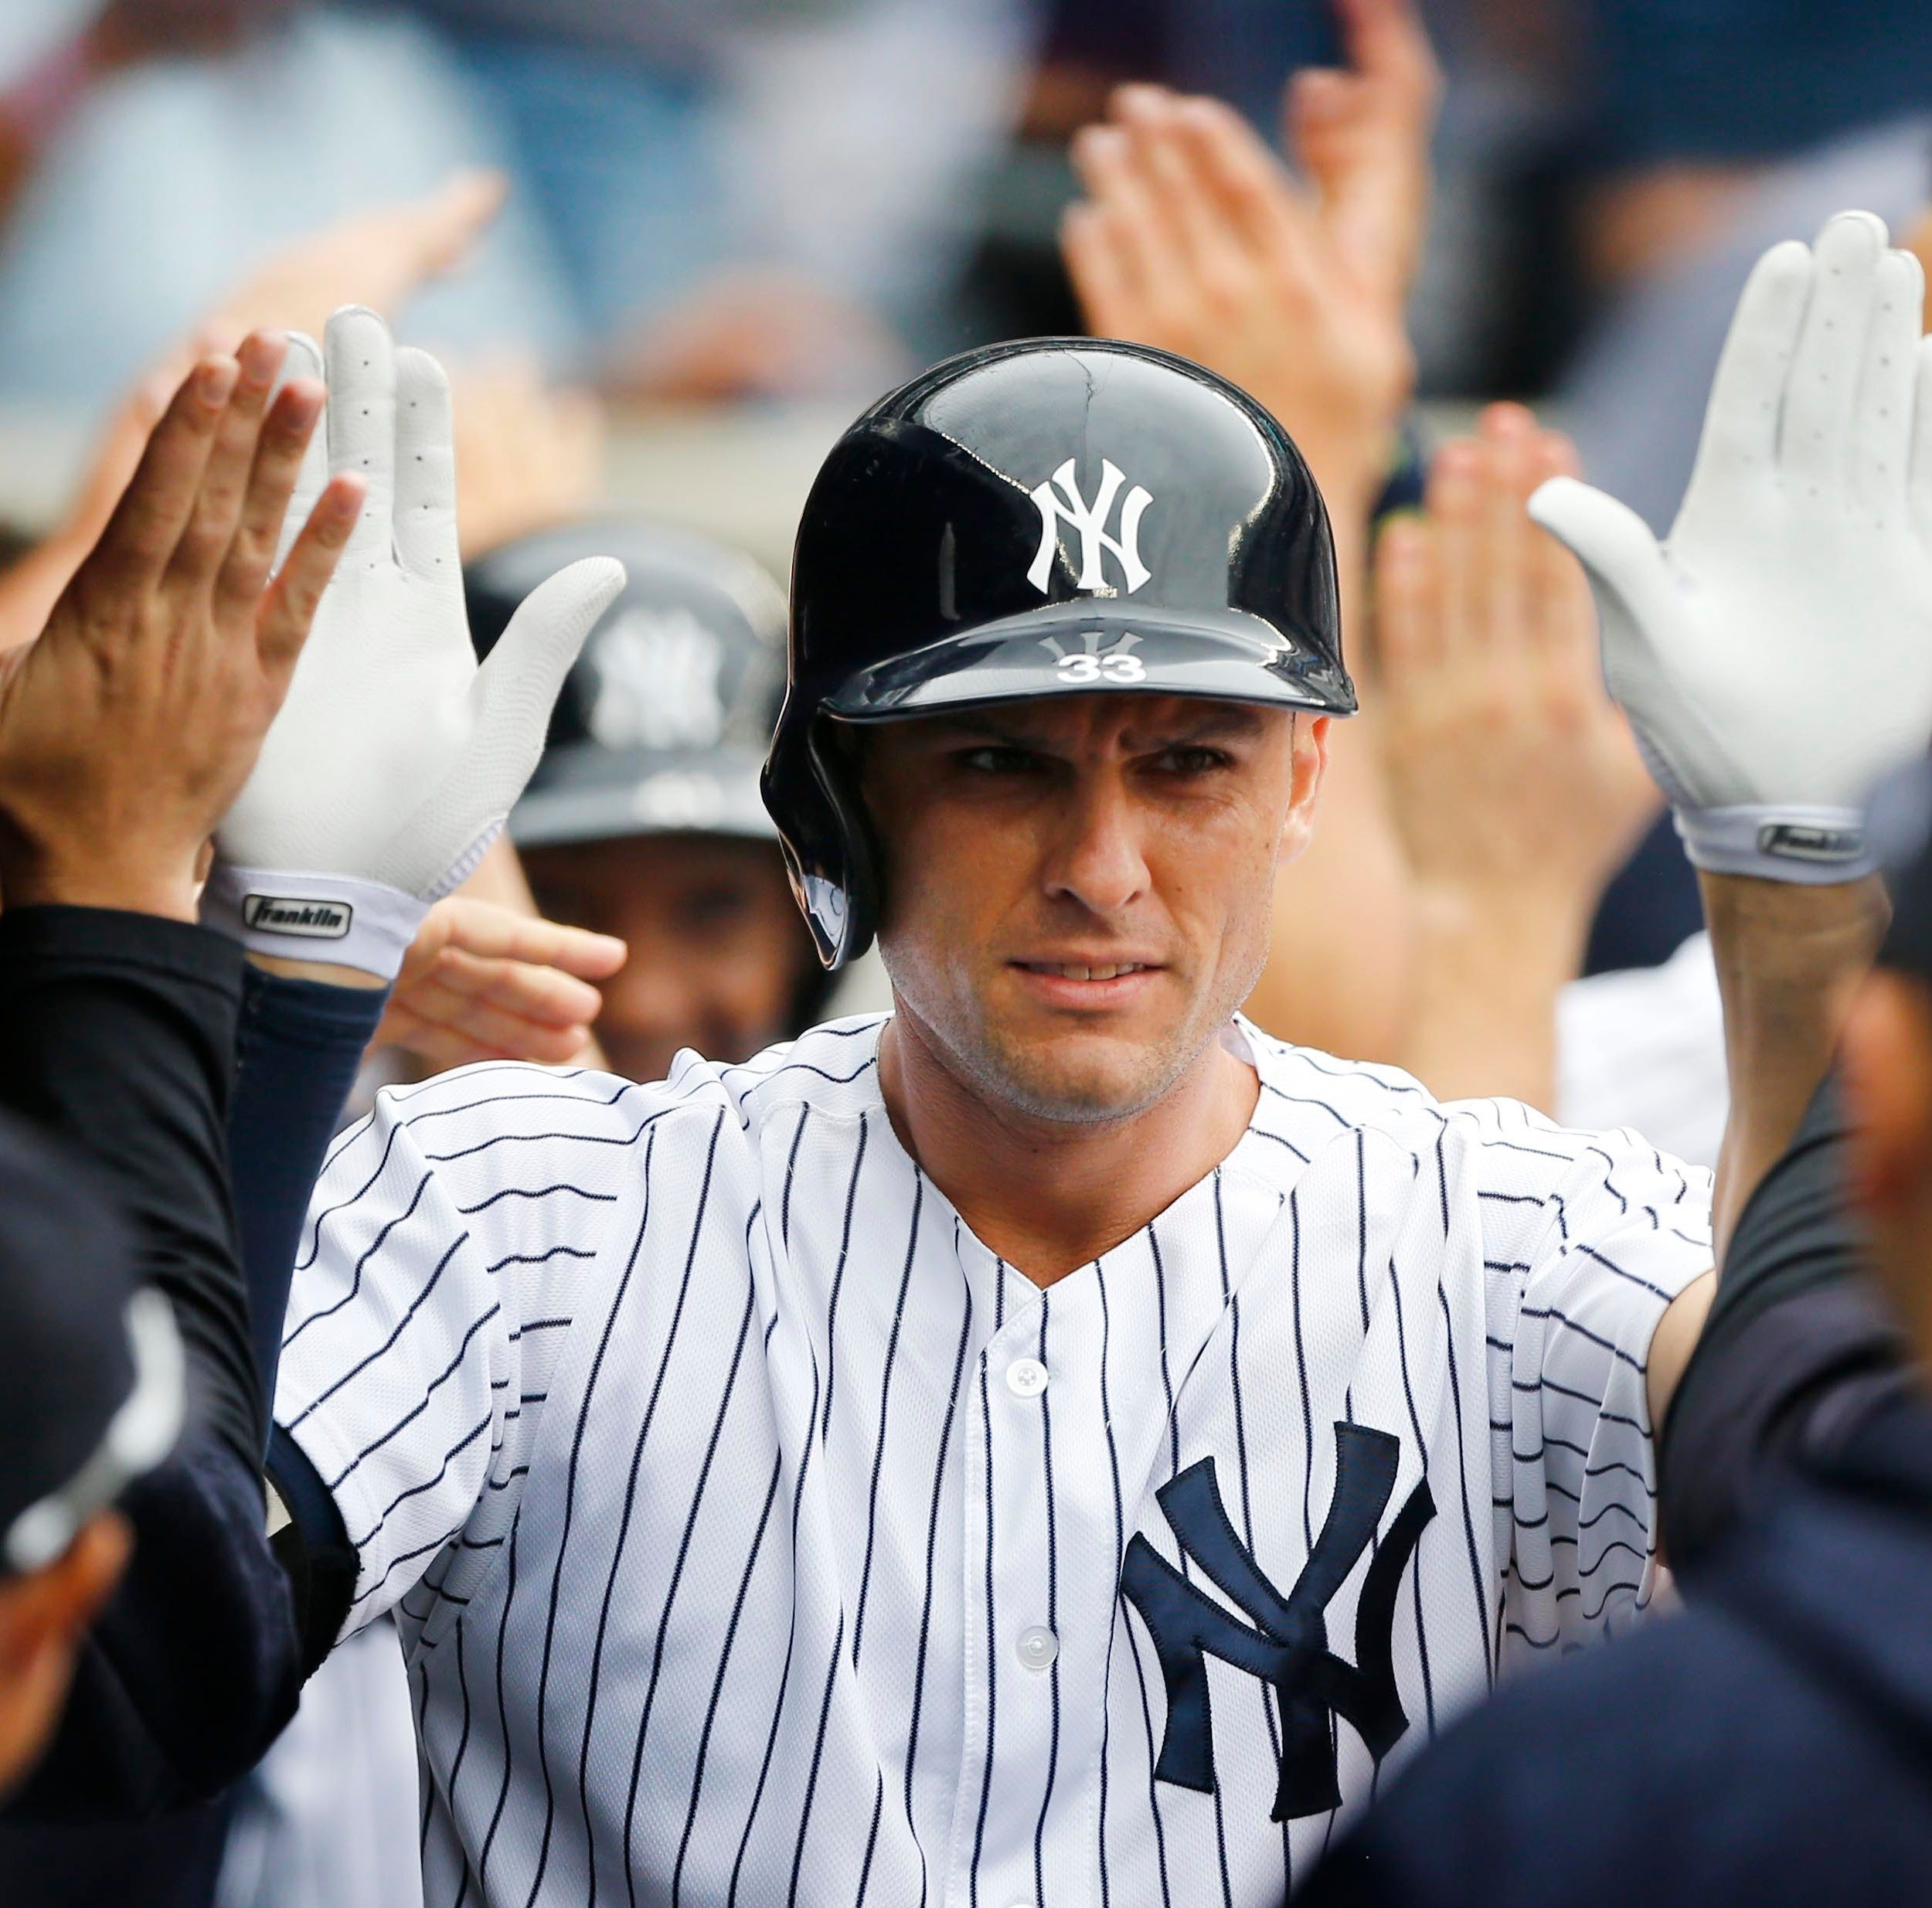 New York Yankees by-the-numbers for Monday, August 20